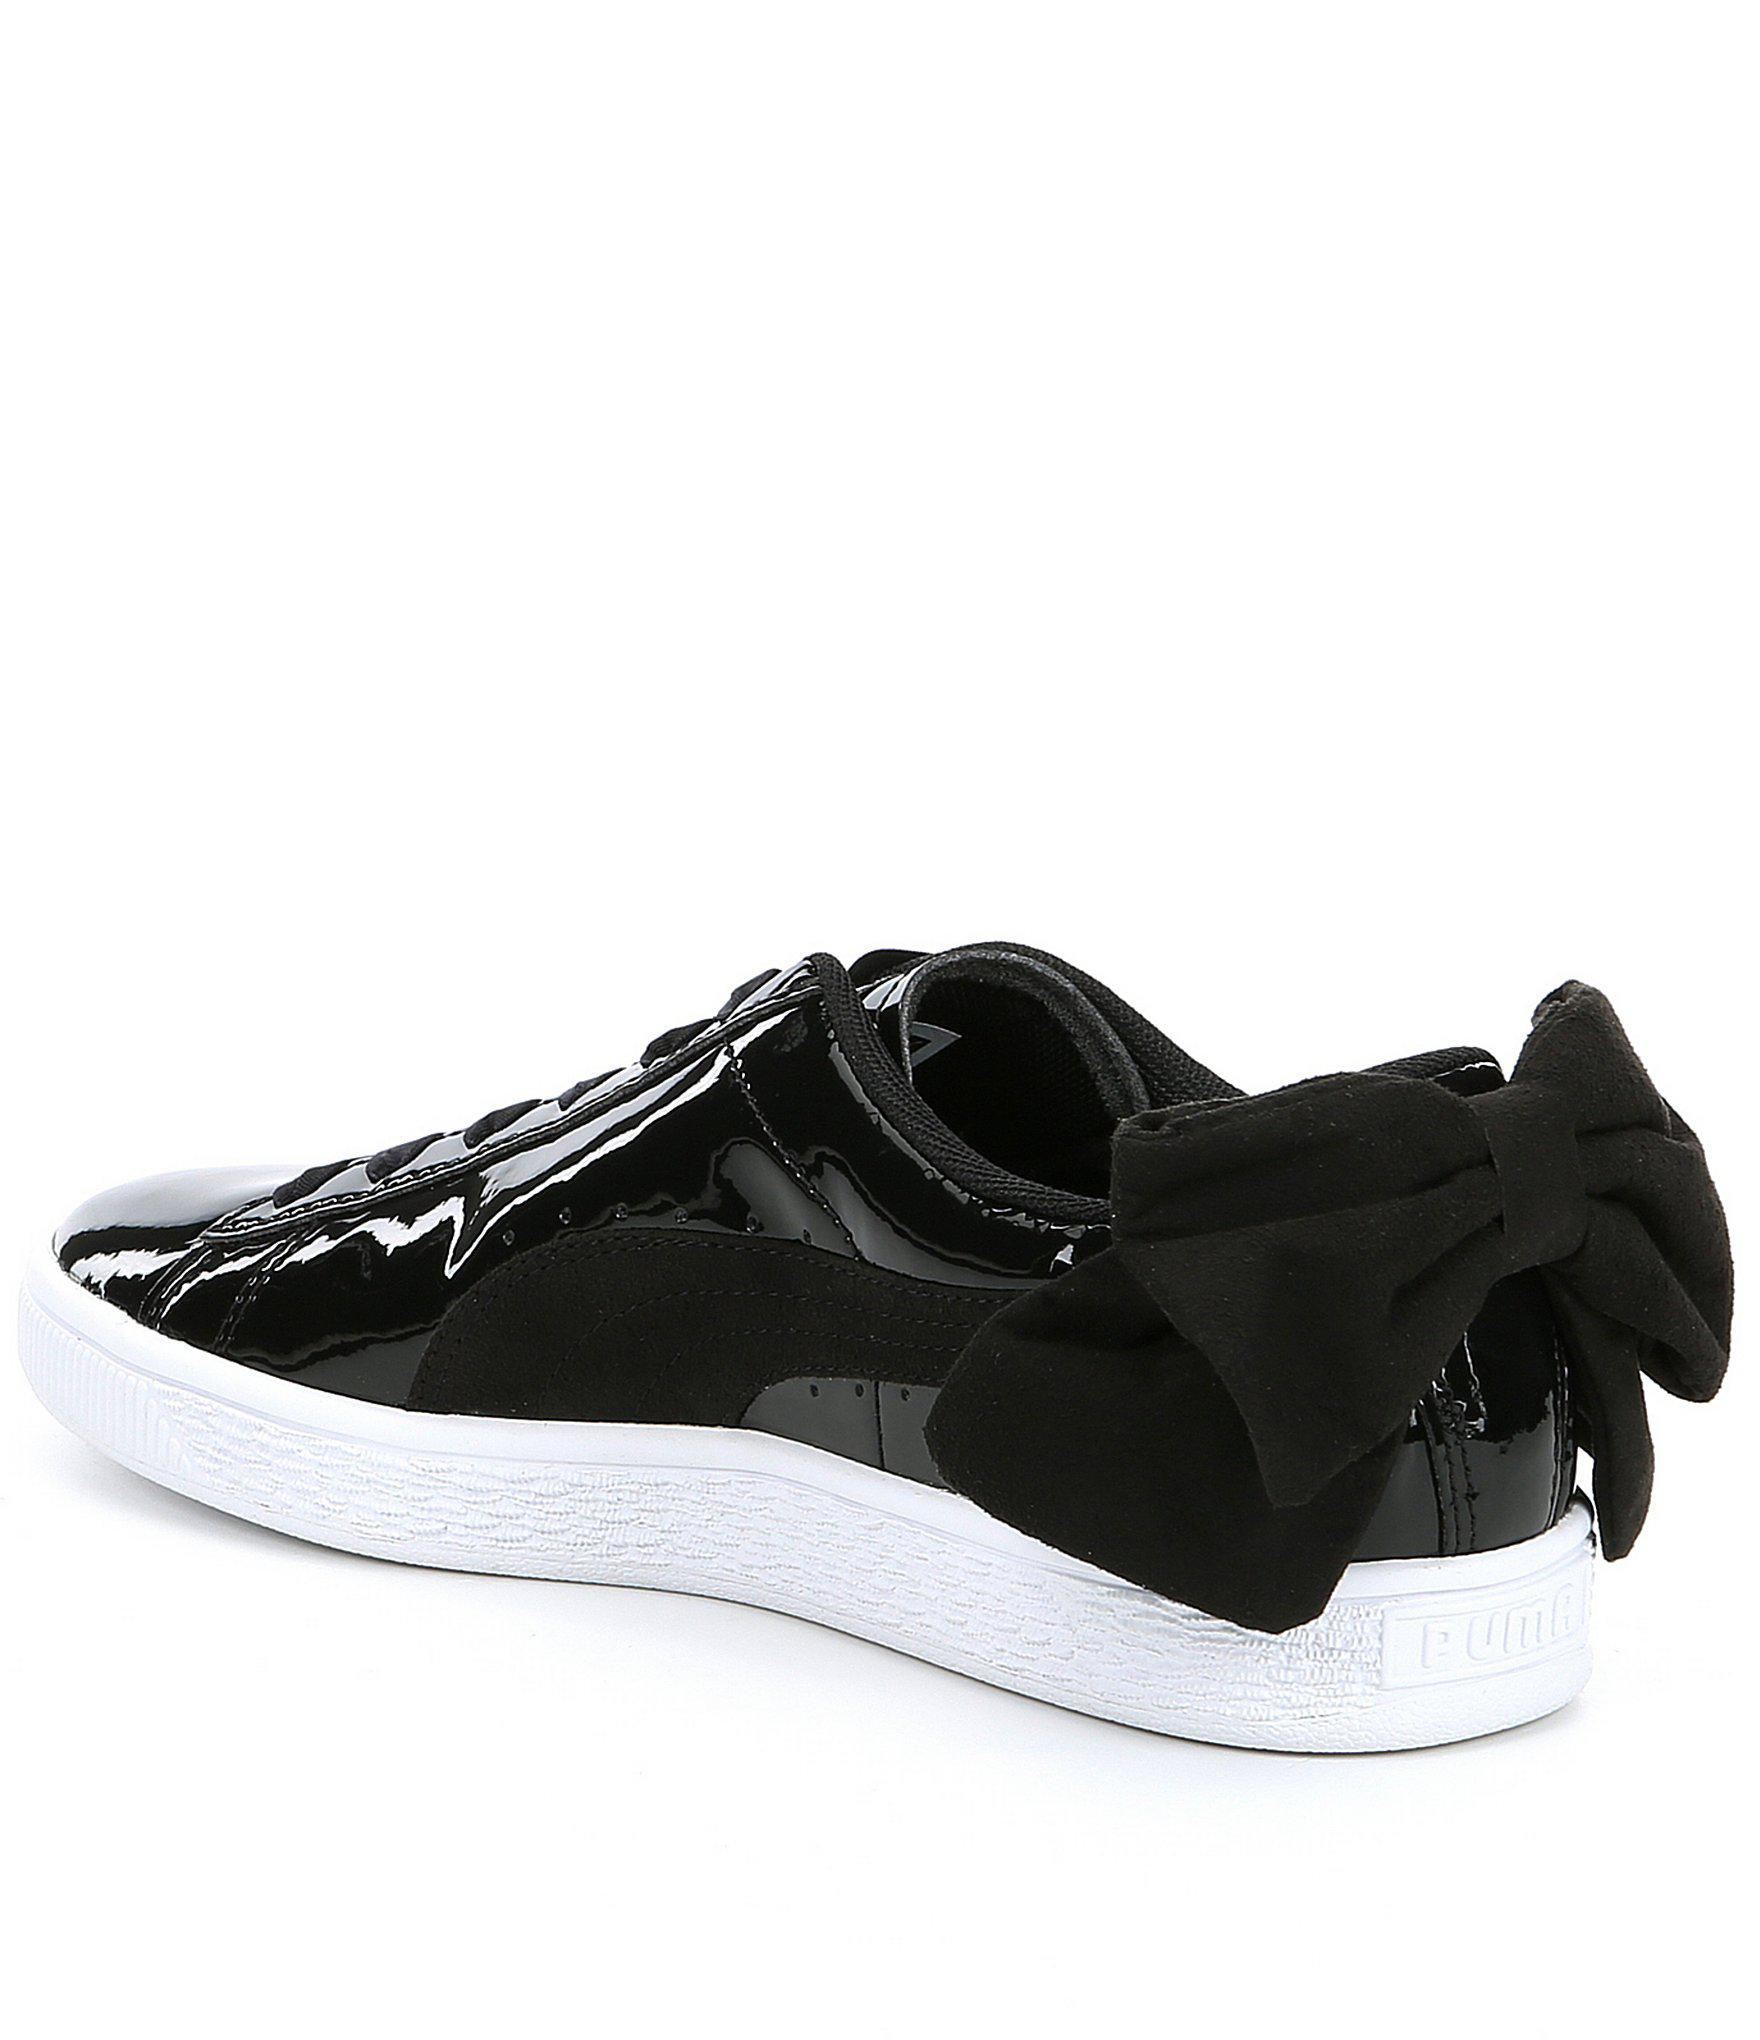 b233a97c98fcaa Lyst - PUMA Basket Bow Patent Leather Sb Sneakers in Black